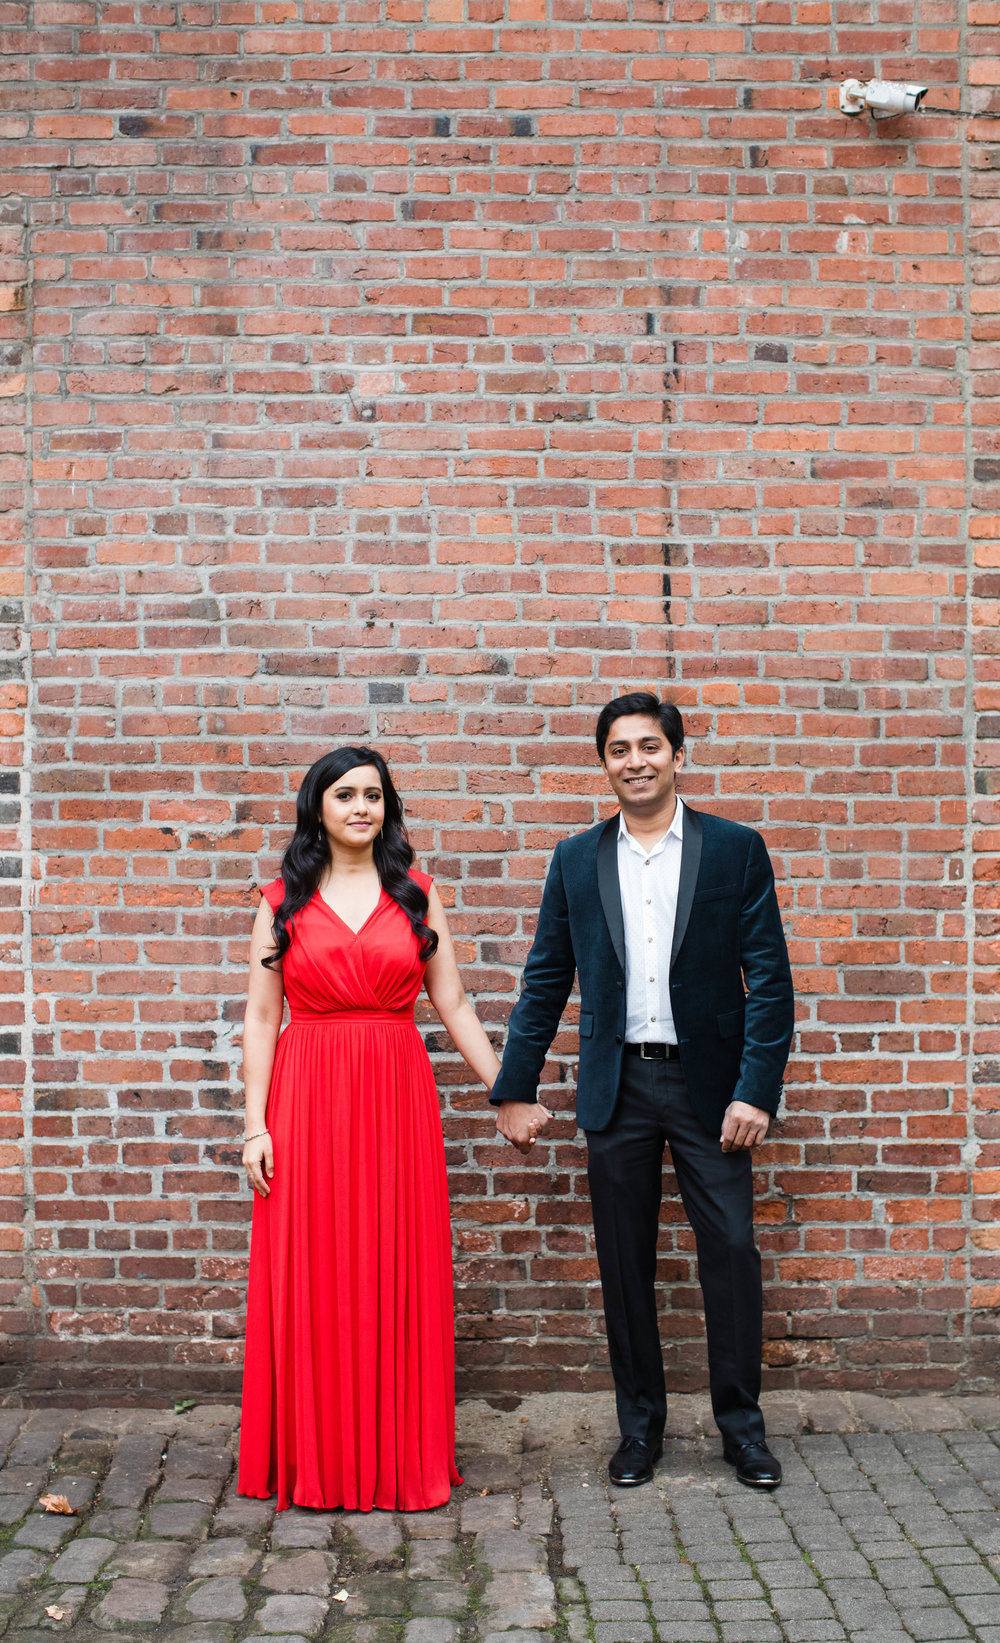 pioneer Square Engagement photos by adina preston weddings